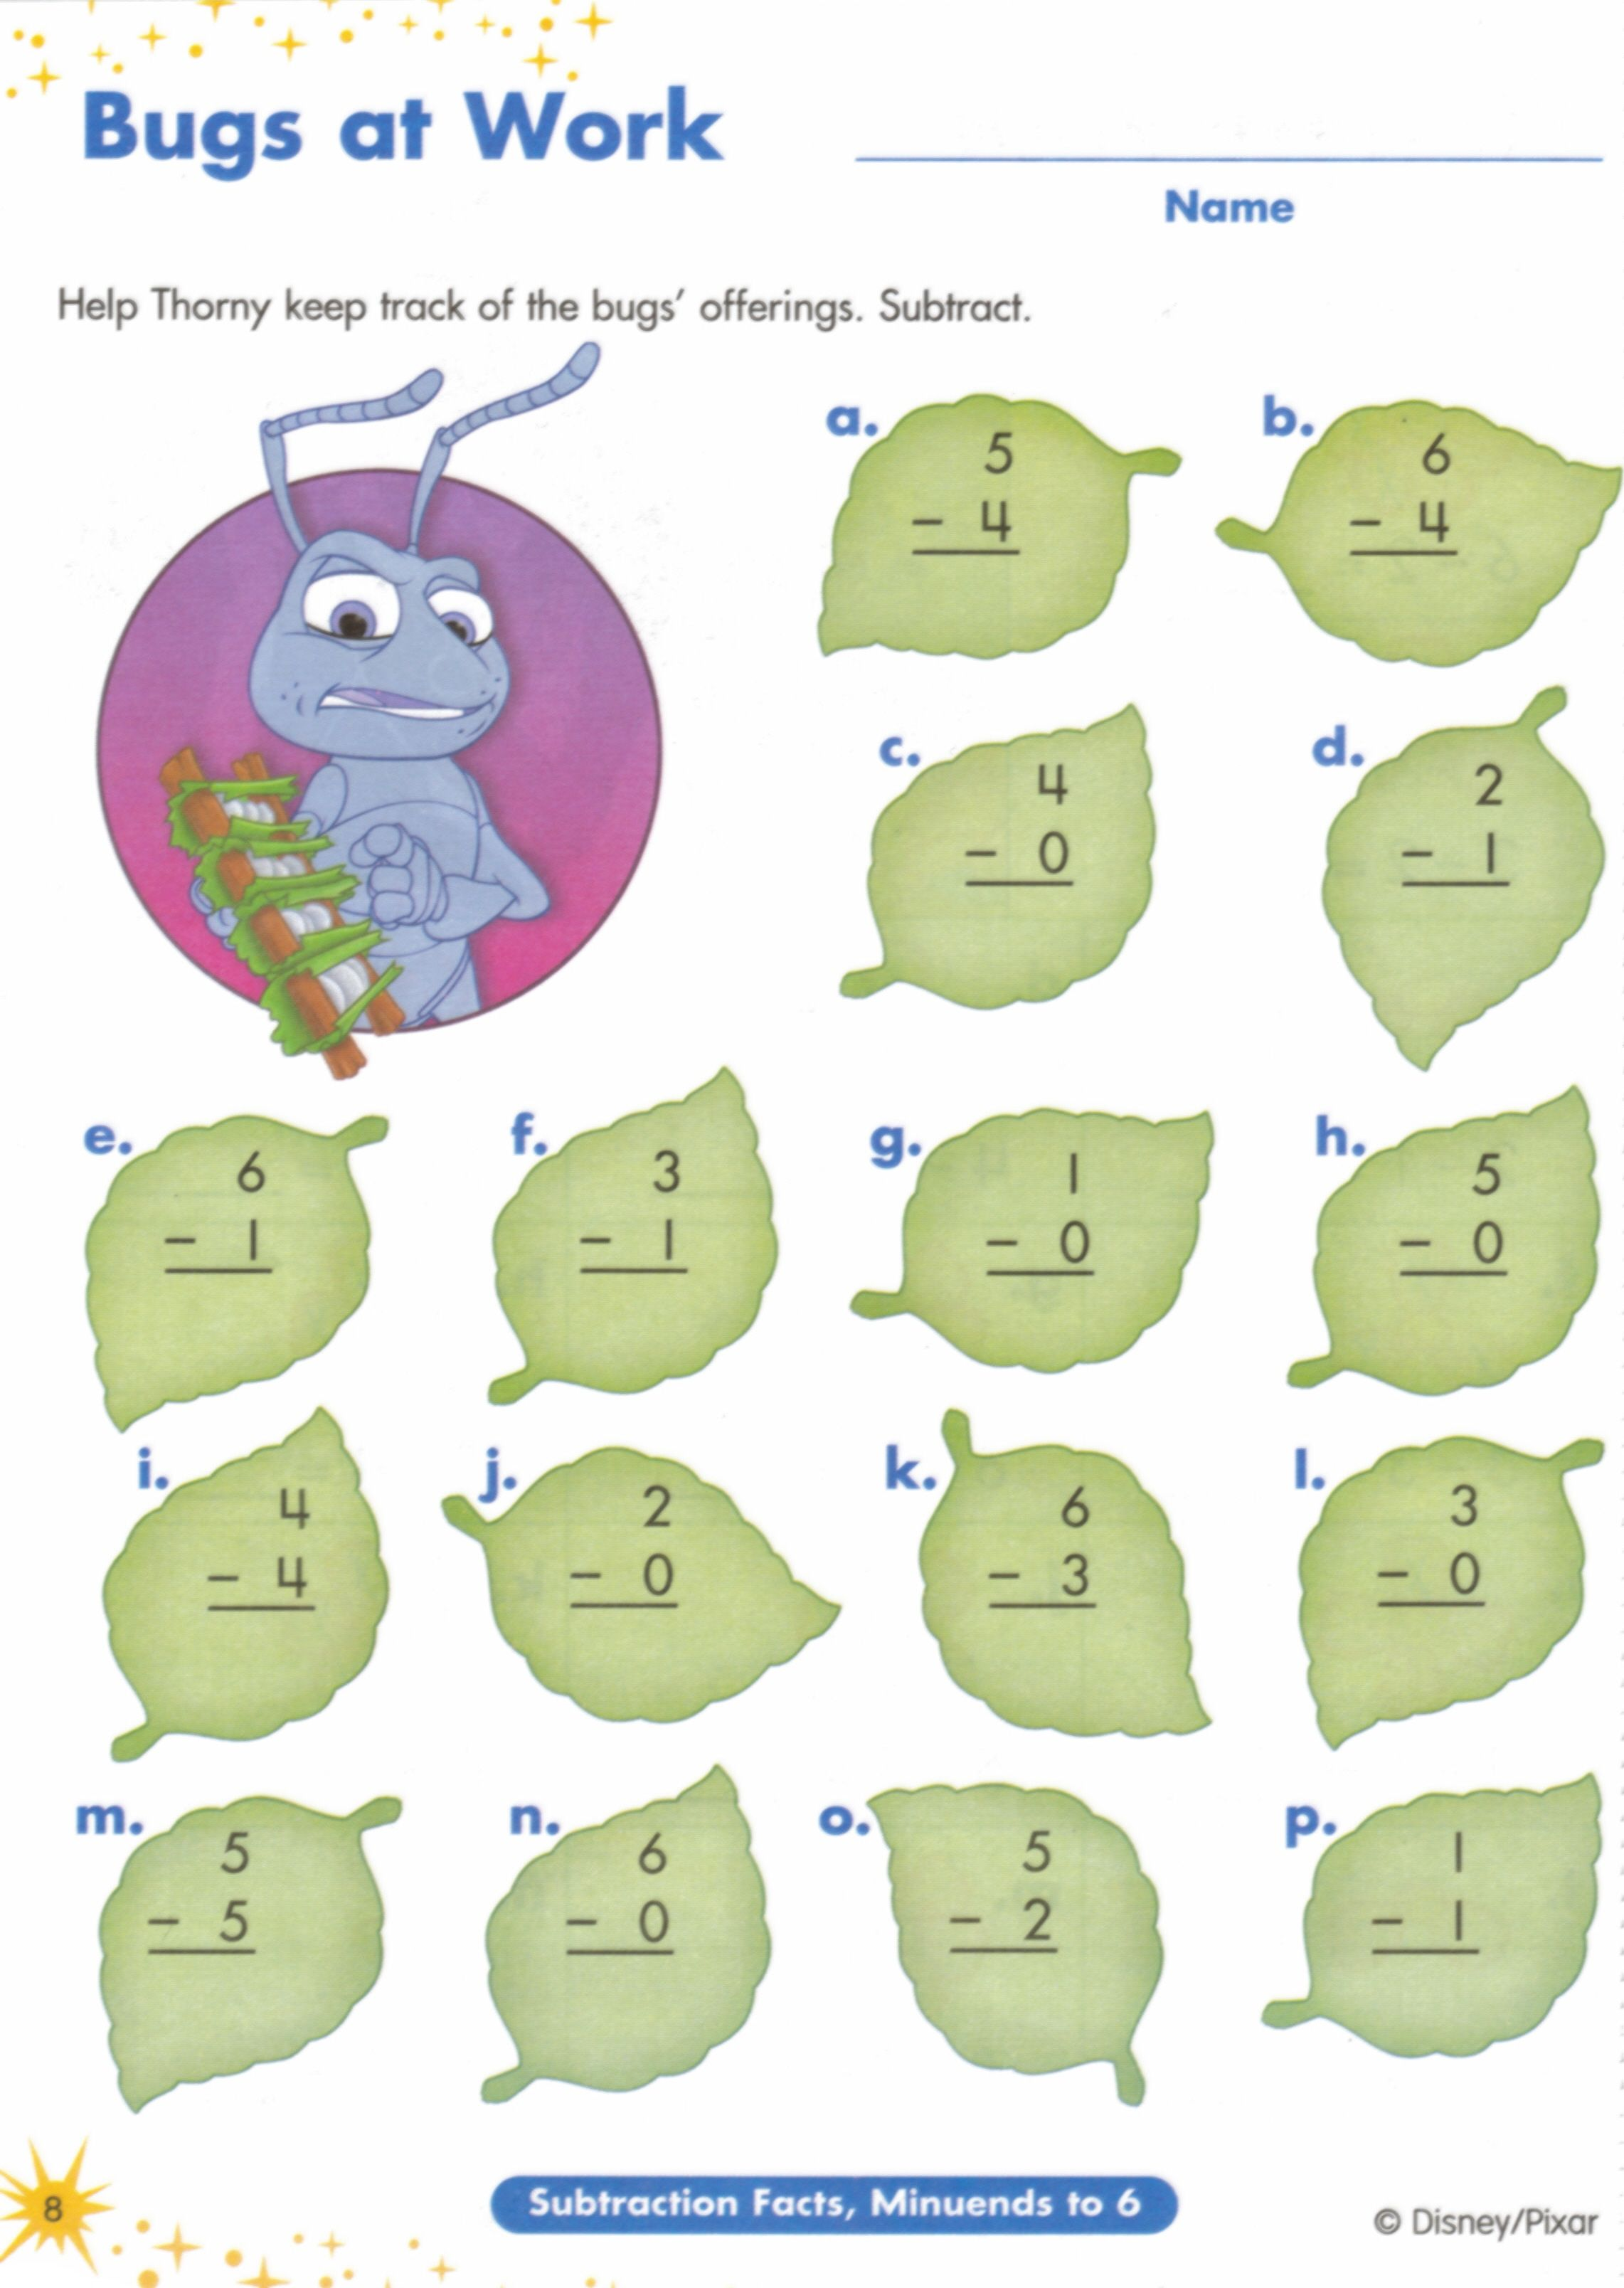 Weirdmailus  Fascinating  Images About Worksheets On Pinterest  Fun Facts For Kids  With Remarkable  Images About Worksheets On Pinterest  Fun Facts For Kids Earth Day Worksheets And Jungles With Captivating Magna Cell Student Worksheet Answers Also Multiplying Fractions Worksheet Pdf In Addition Writing Formulas Ionic Compounds Worksheet And Th Grade Fraction Worksheets As Well As Th Step Inventory Worksheet Additionally Write Steps To Print Selected Data From A Worksheet From Pinterestcom With Weirdmailus  Remarkable  Images About Worksheets On Pinterest  Fun Facts For Kids  With Captivating  Images About Worksheets On Pinterest  Fun Facts For Kids Earth Day Worksheets And Jungles And Fascinating Magna Cell Student Worksheet Answers Also Multiplying Fractions Worksheet Pdf In Addition Writing Formulas Ionic Compounds Worksheet From Pinterestcom